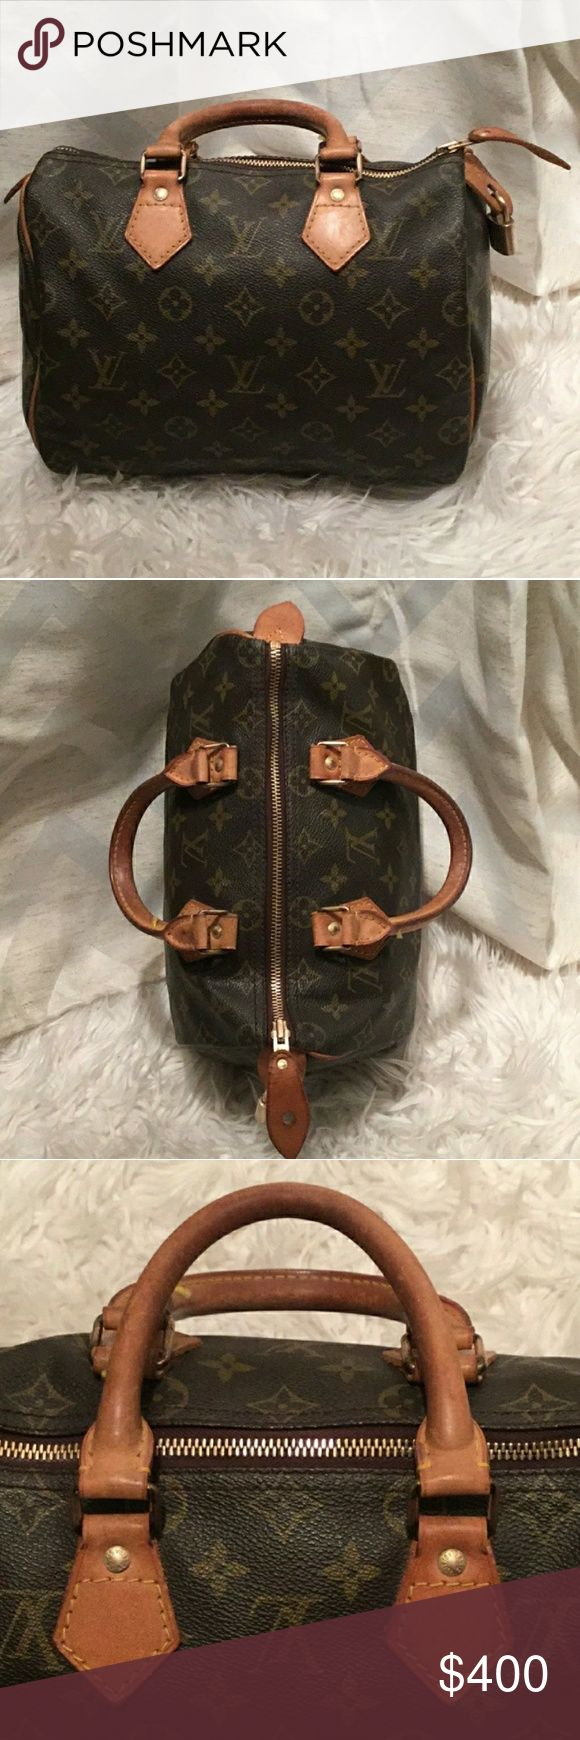 Authentic Louis Vuitton Speedy 25 Excellent condition. Great used condition for age of bag. Authentic. Date code provided in picture's and reads SD861. That means this bag was made in the first month of 1986. With that being said, for a 32 year old bag it's in pristine shape. Any questions please ask. Willing to trade with honest, well established poshers whom have great feedback only.trade value $450. Louis Vuitton Bags Totes